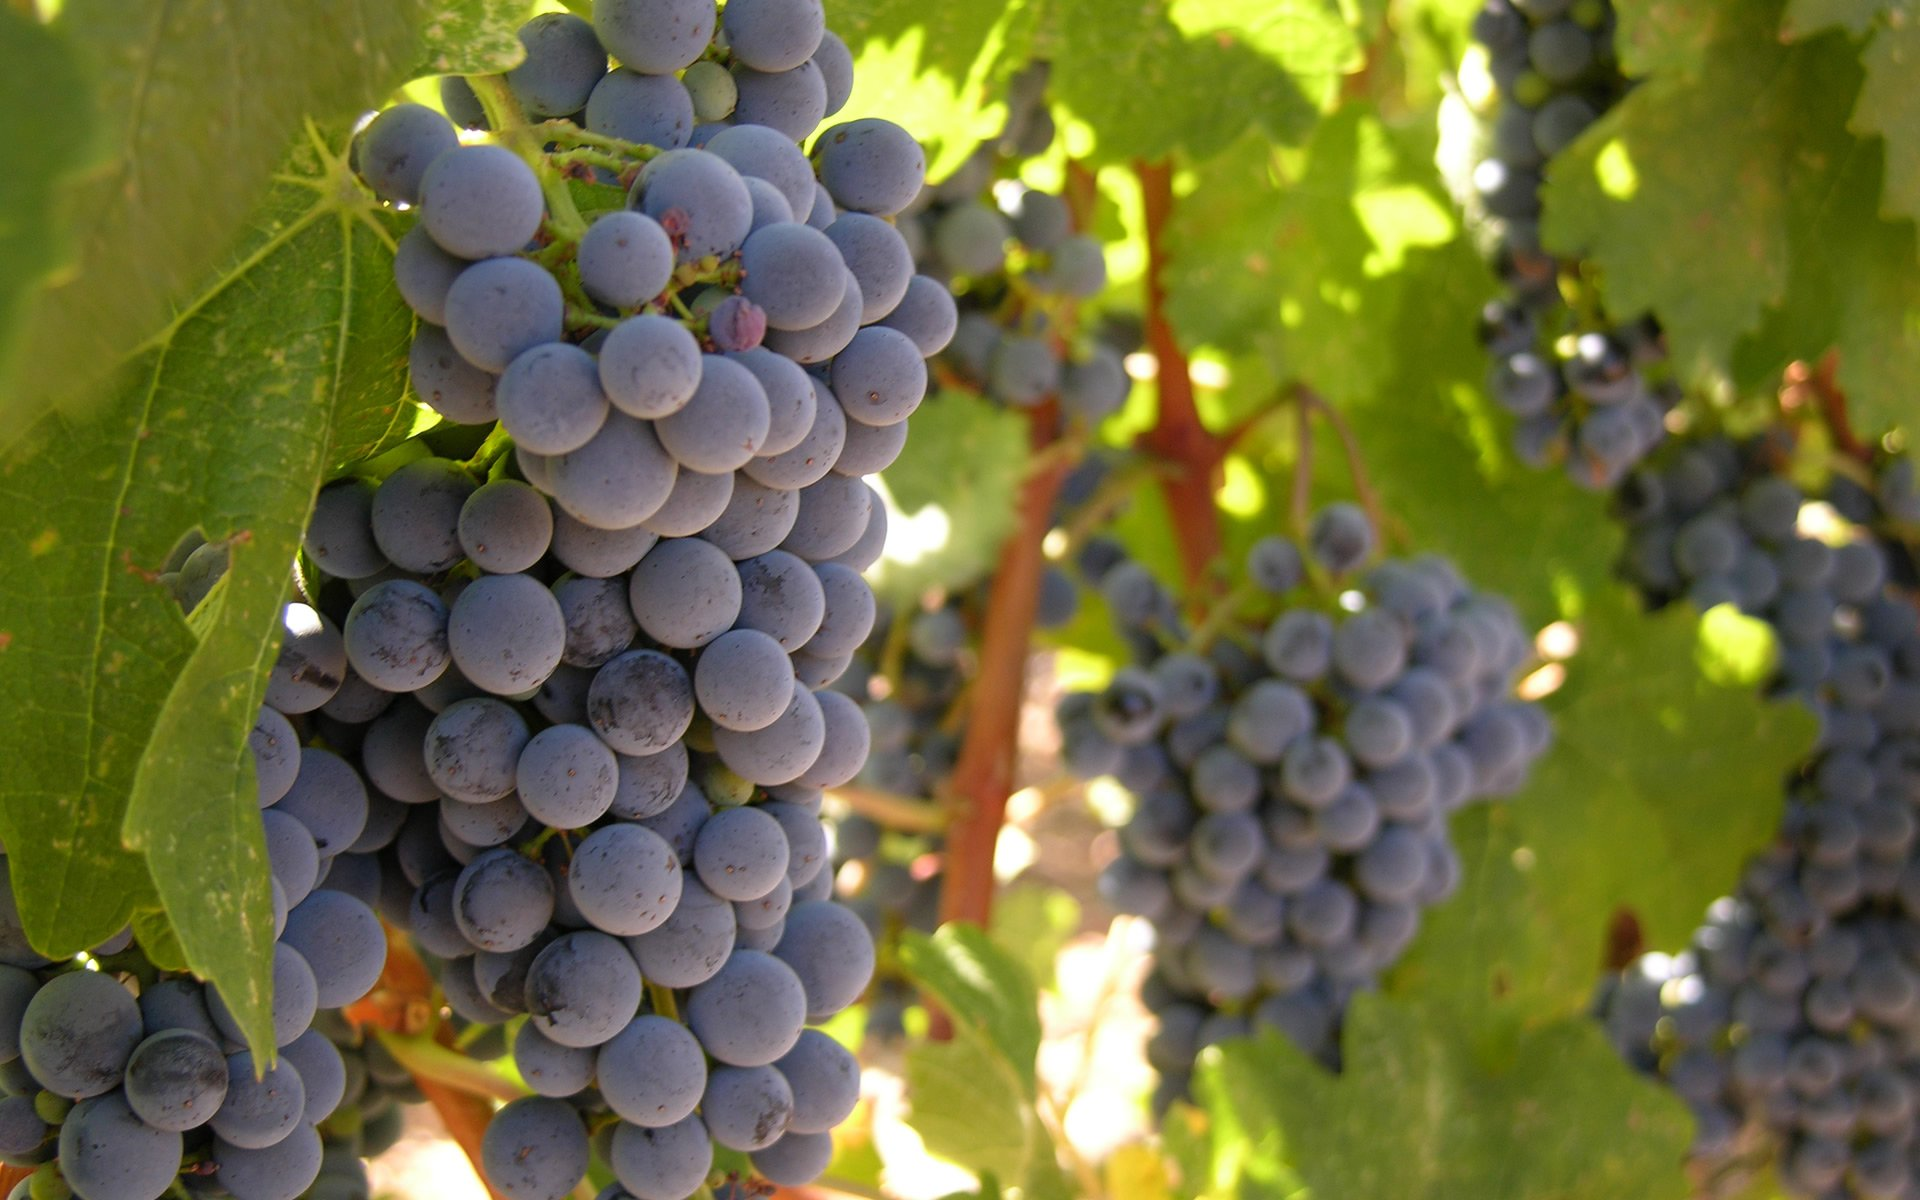 patient-life-high-endometriosis-stage-backgrounds-grapevines-images